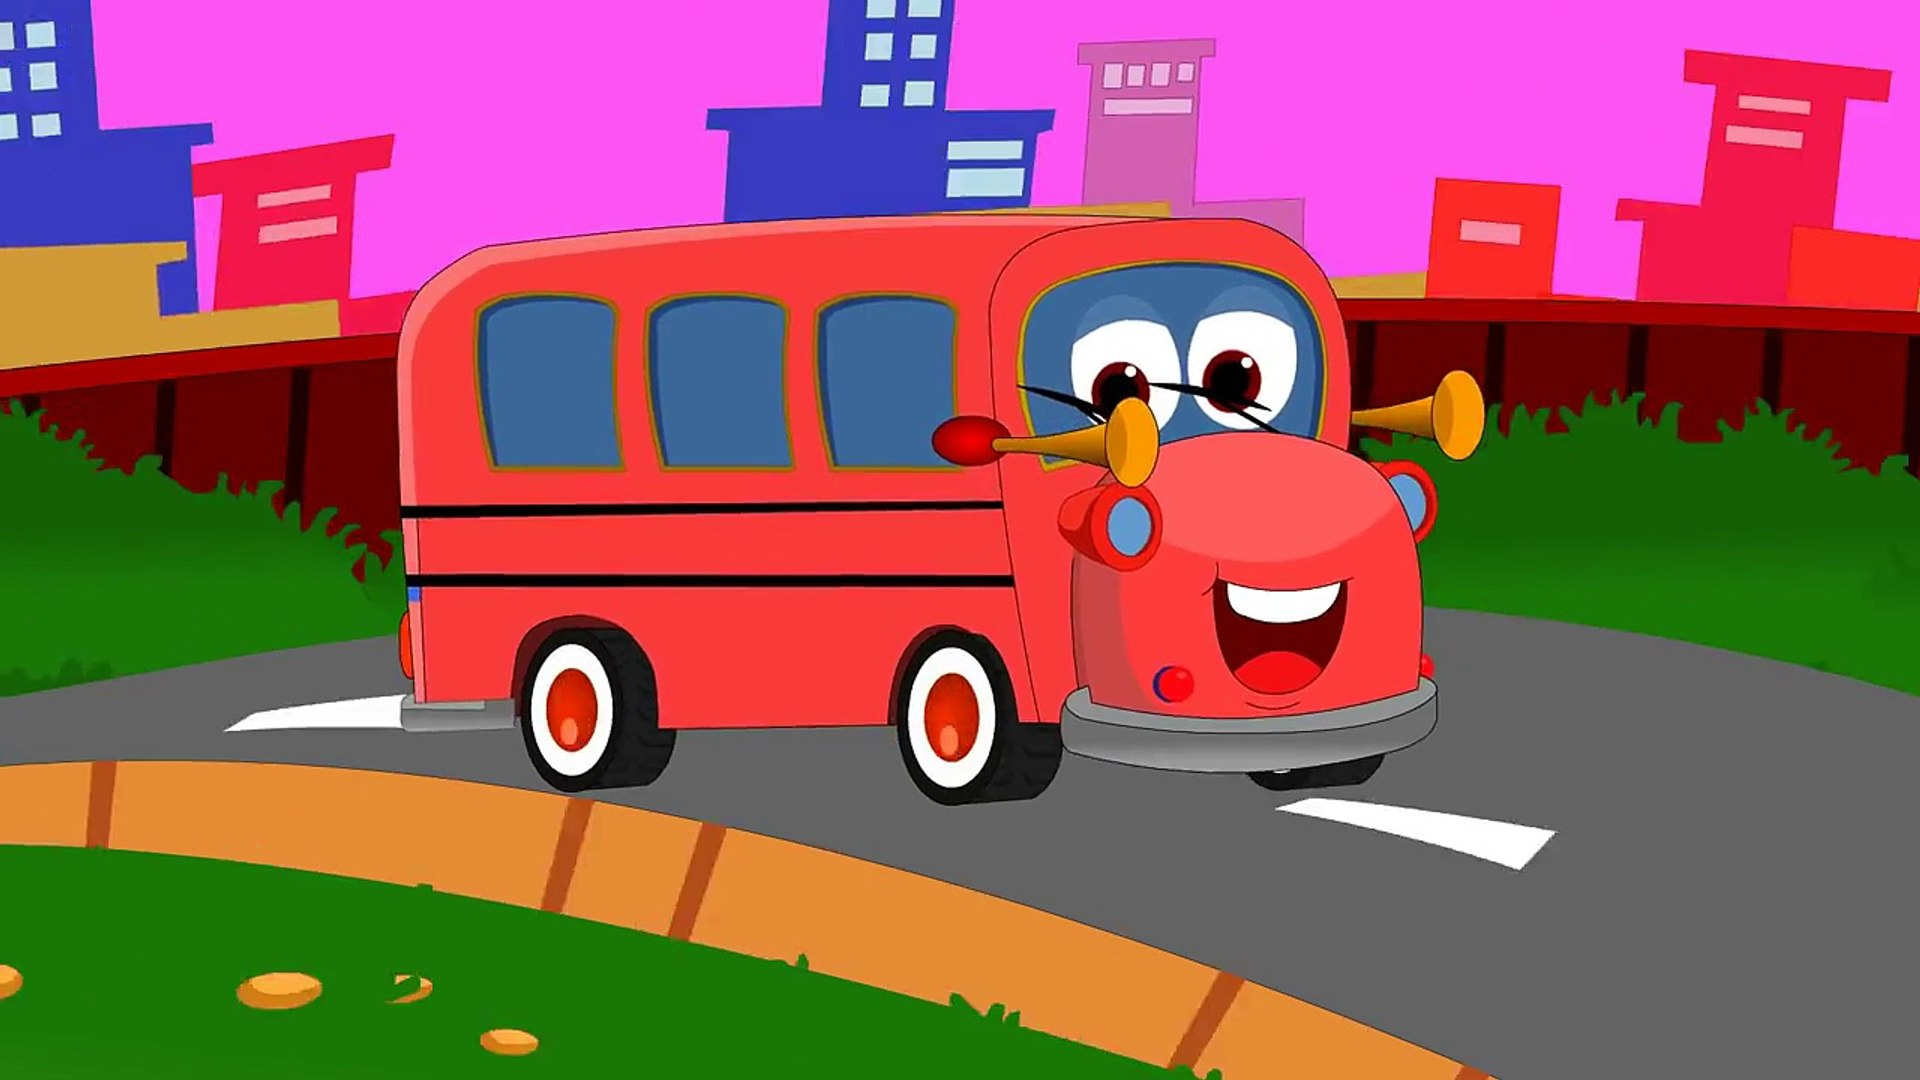 Wheels On The Bus English Nursery Rhyme For Children Red Bus With Lyrics Hd Dailymotion Video